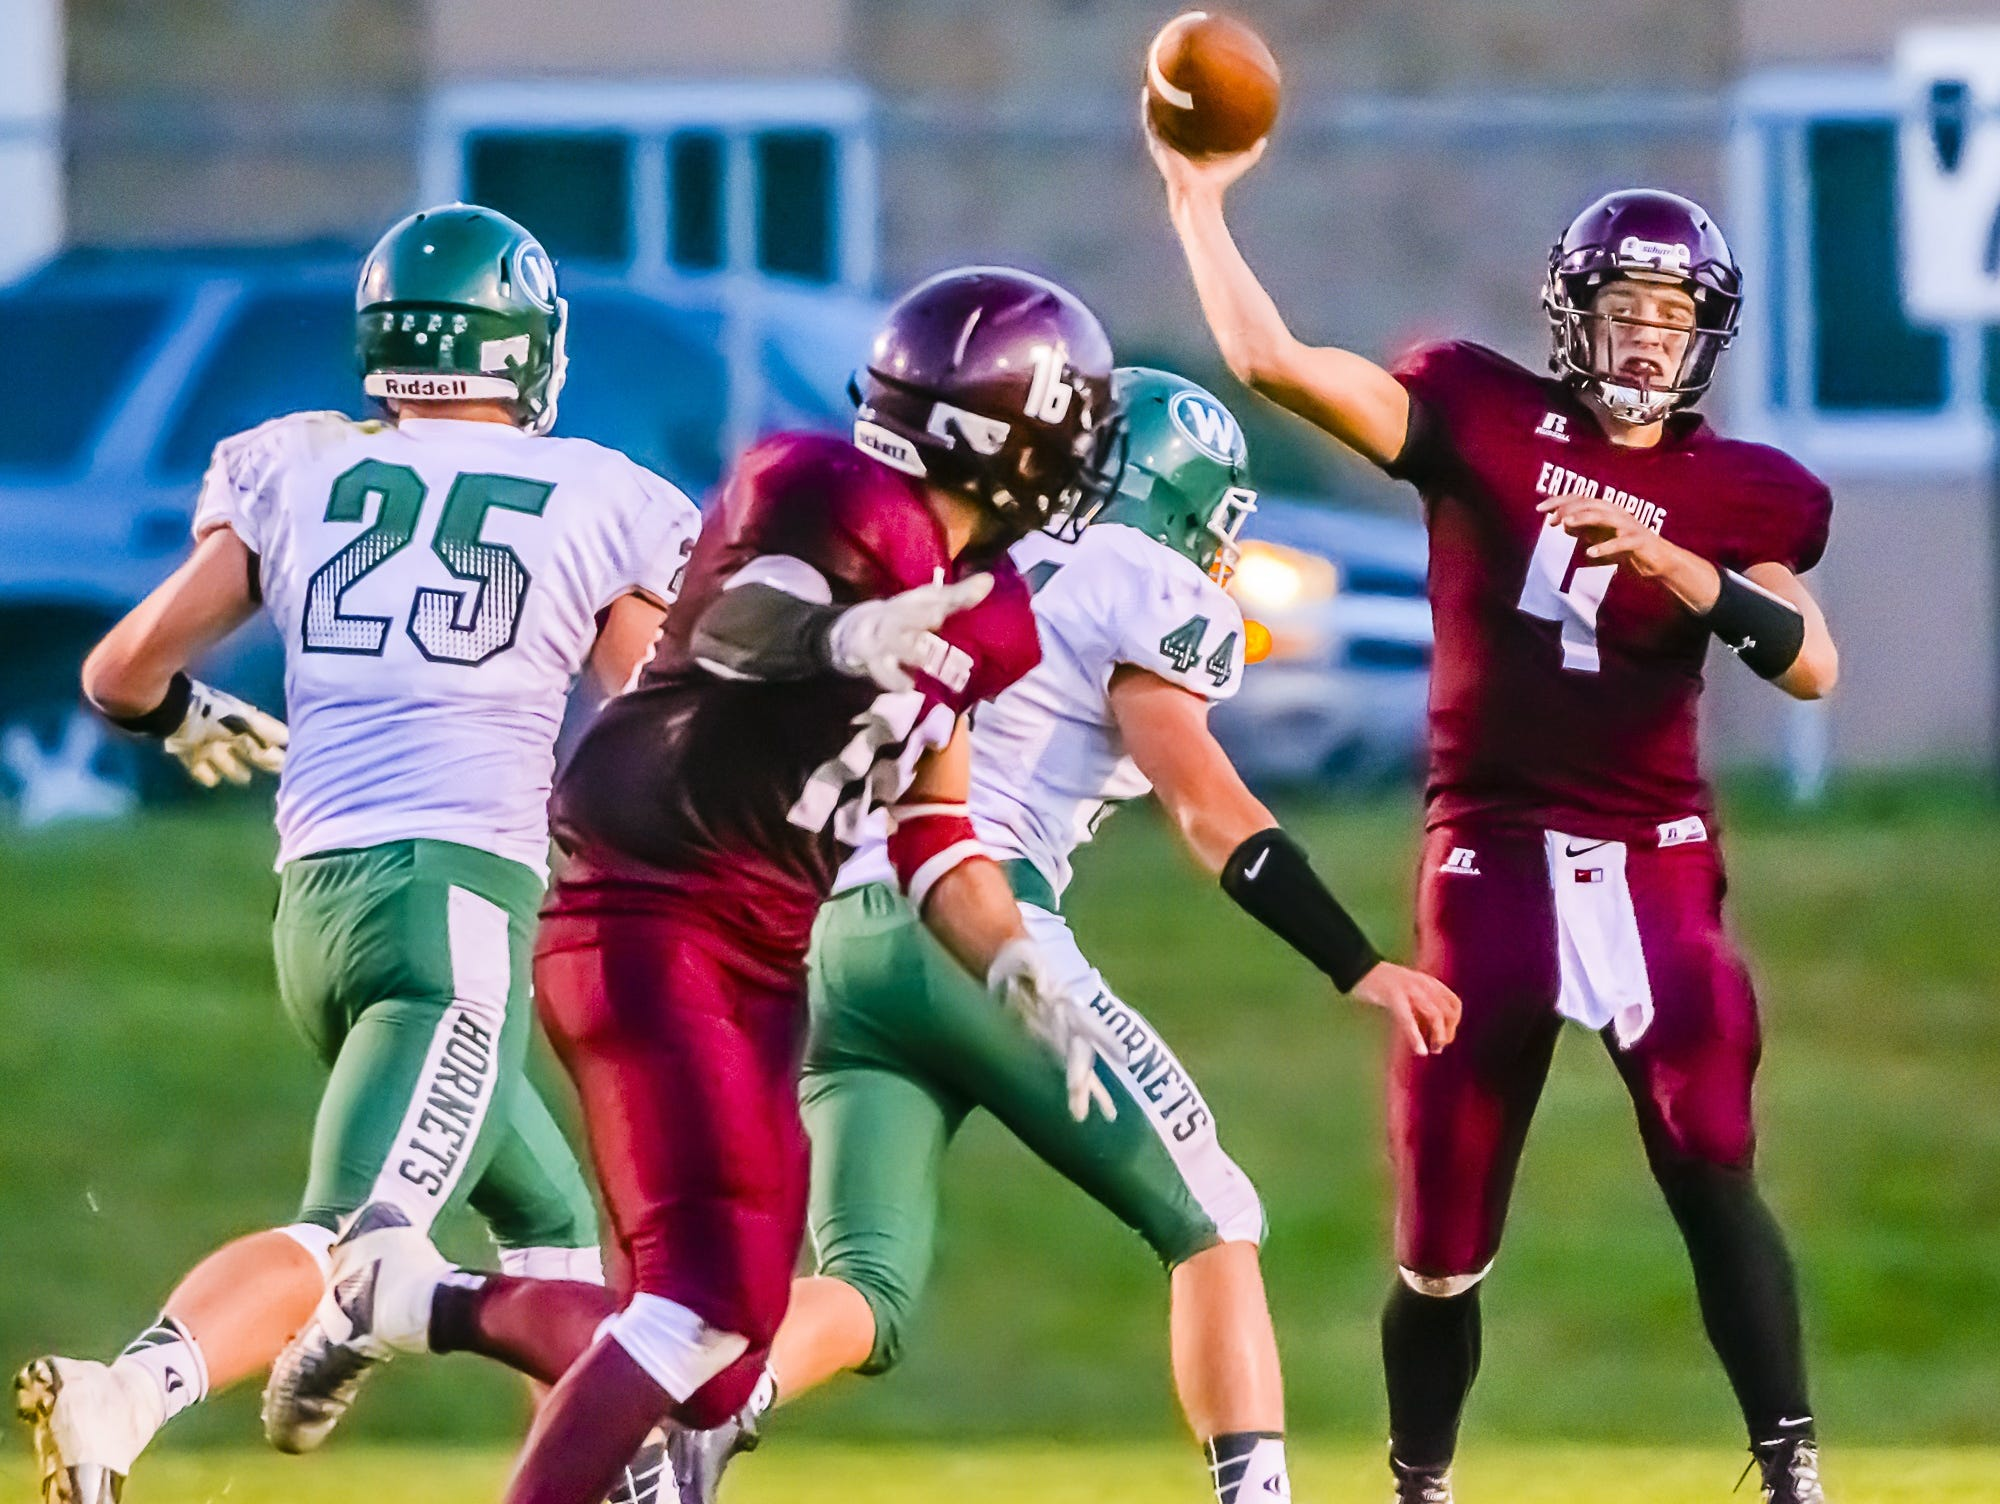 Eaton Rapids quarterbcak Zach Kemp, right, passes to Tristen Schultz, second from left, for a first down during a game against Williamston last year. Kemp and Schultz are both returning for the Greyhounds' offense in 2016.